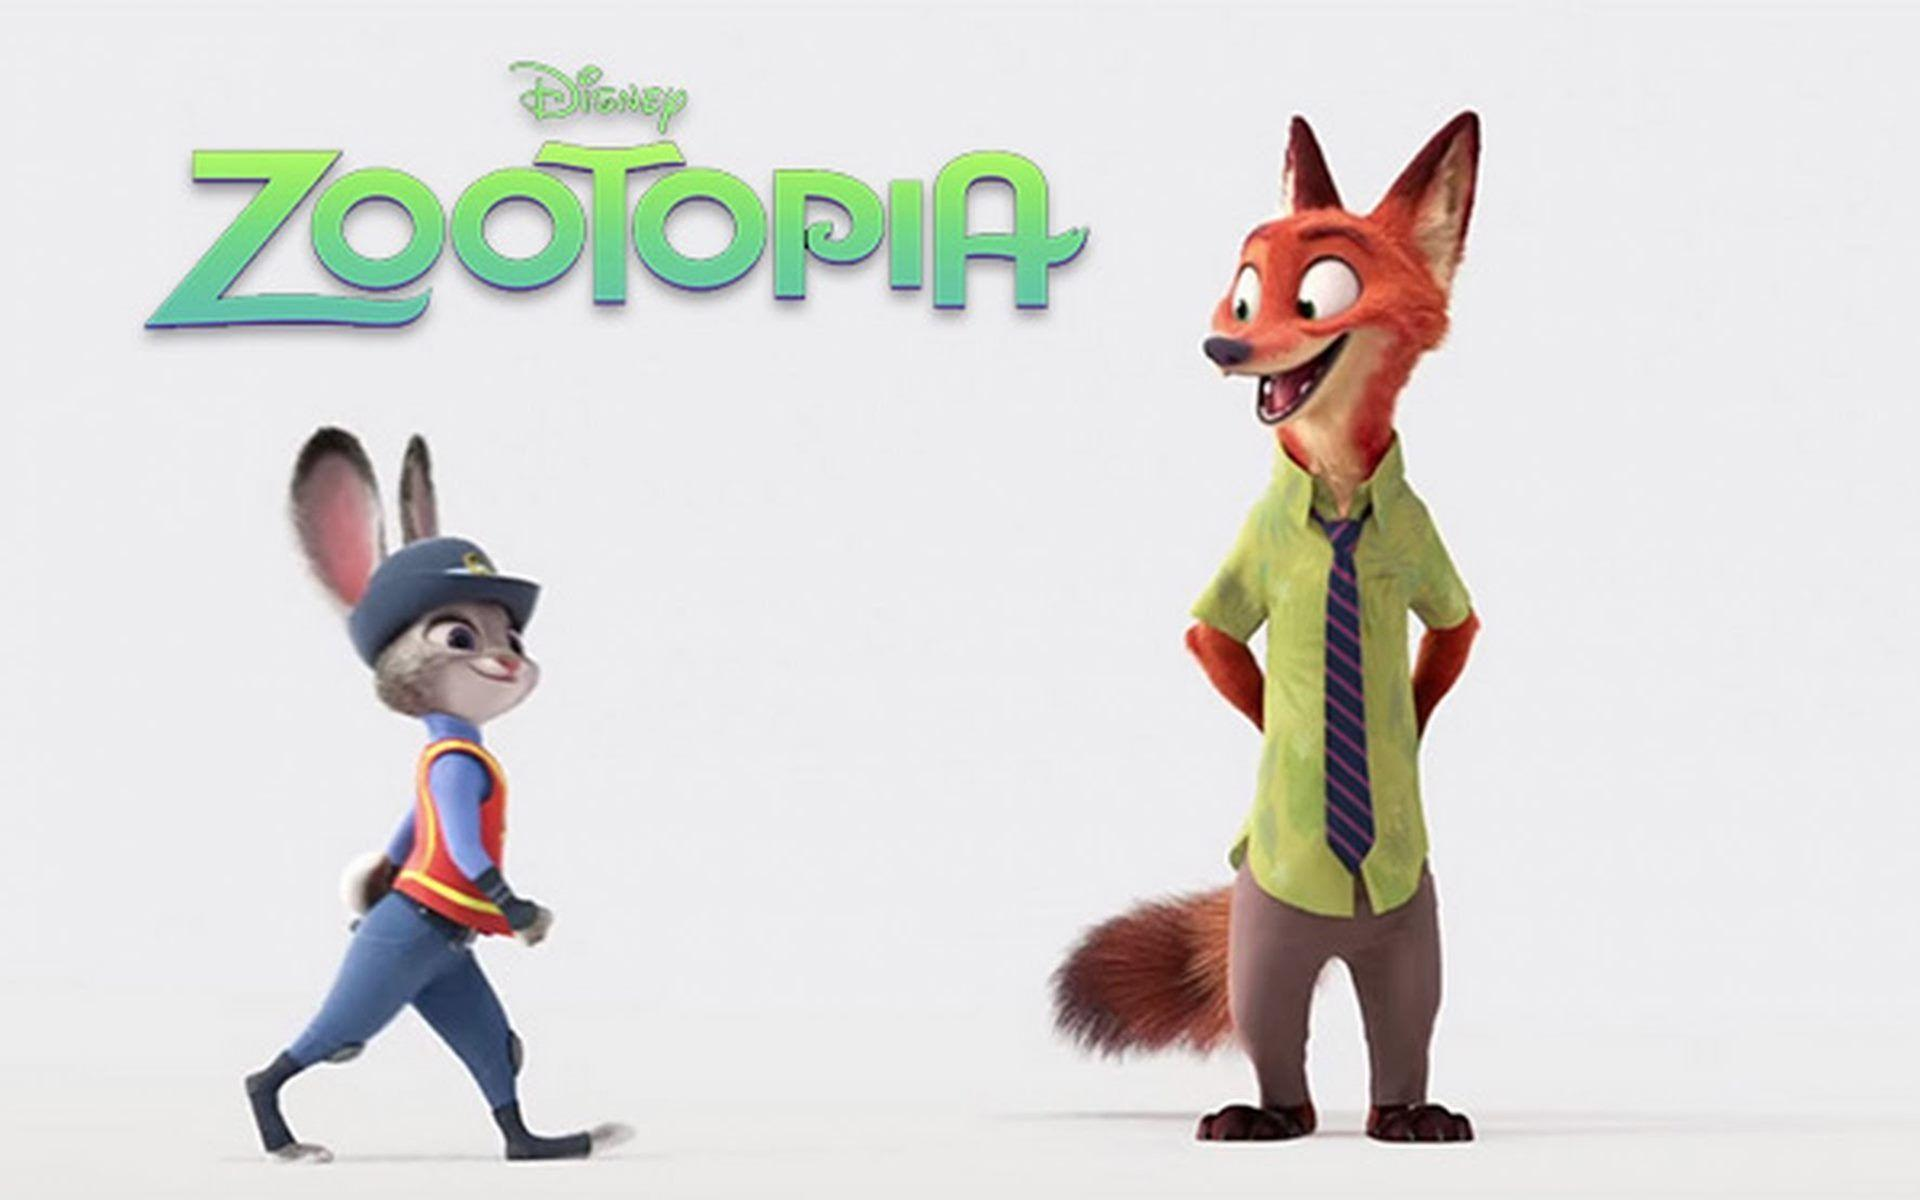 Zootopia wallpaper HD background download desktop • iPhones Wallpapers